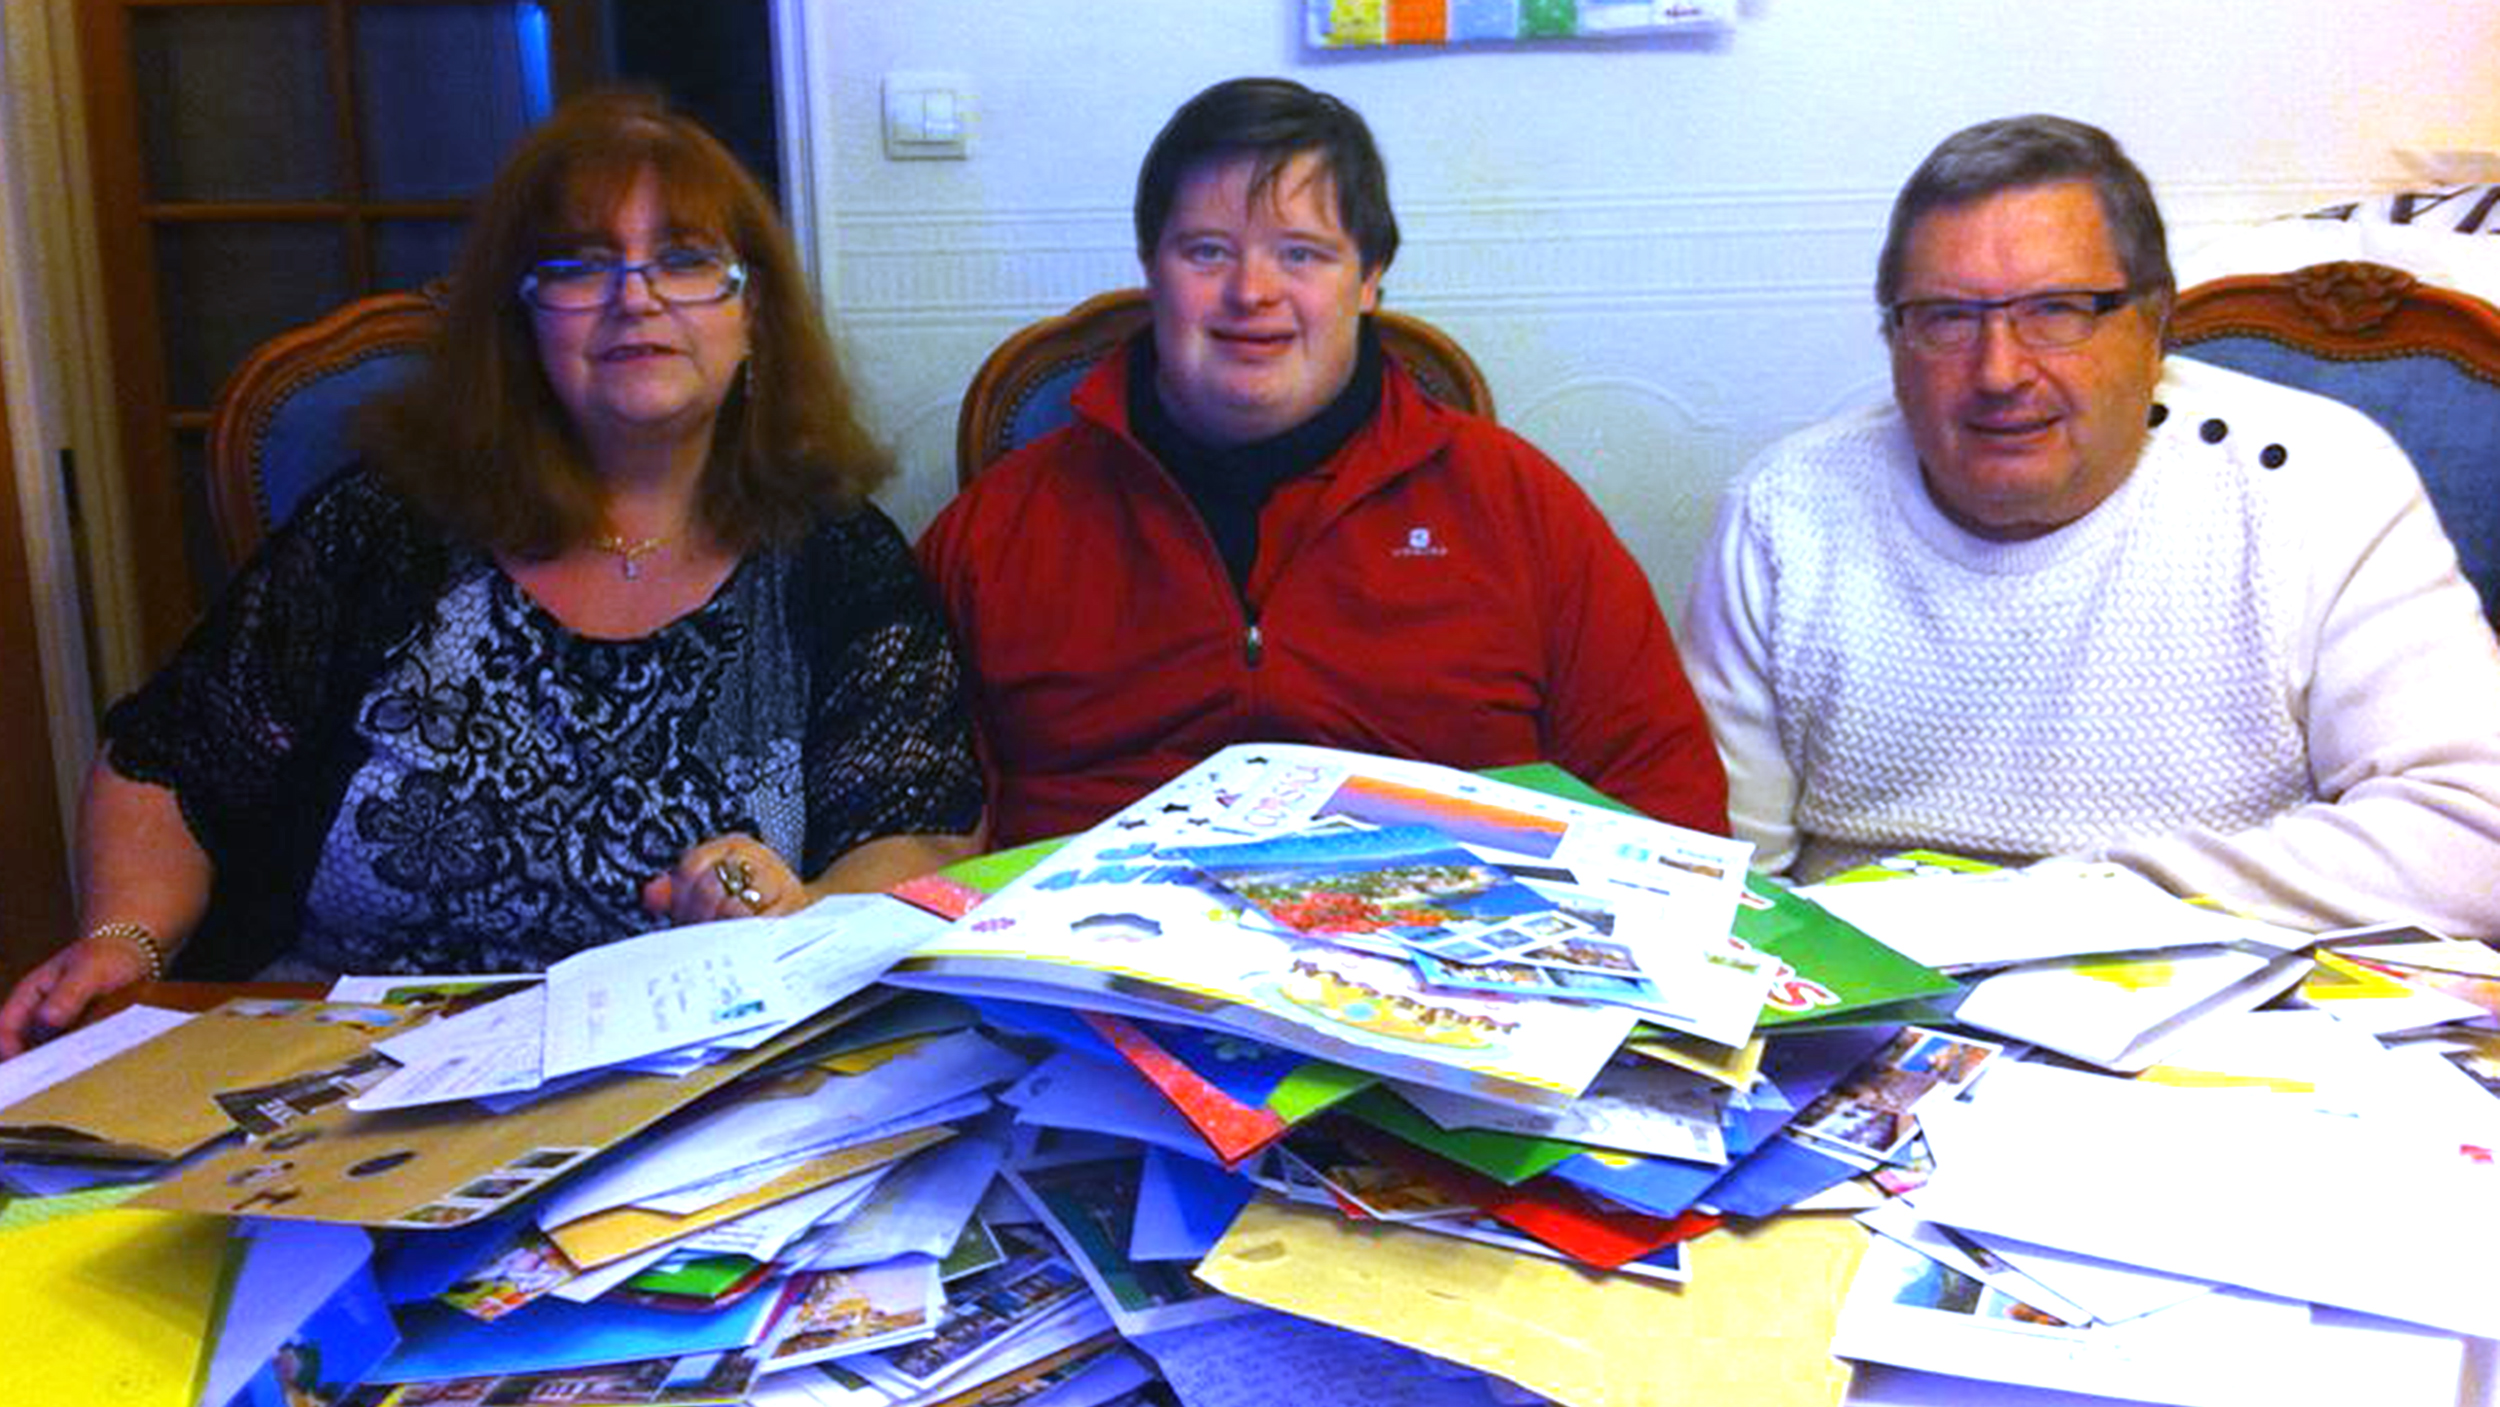 Man With Down Syndrome Gets 42000 Birthday Cards After Dads Facebook Plea